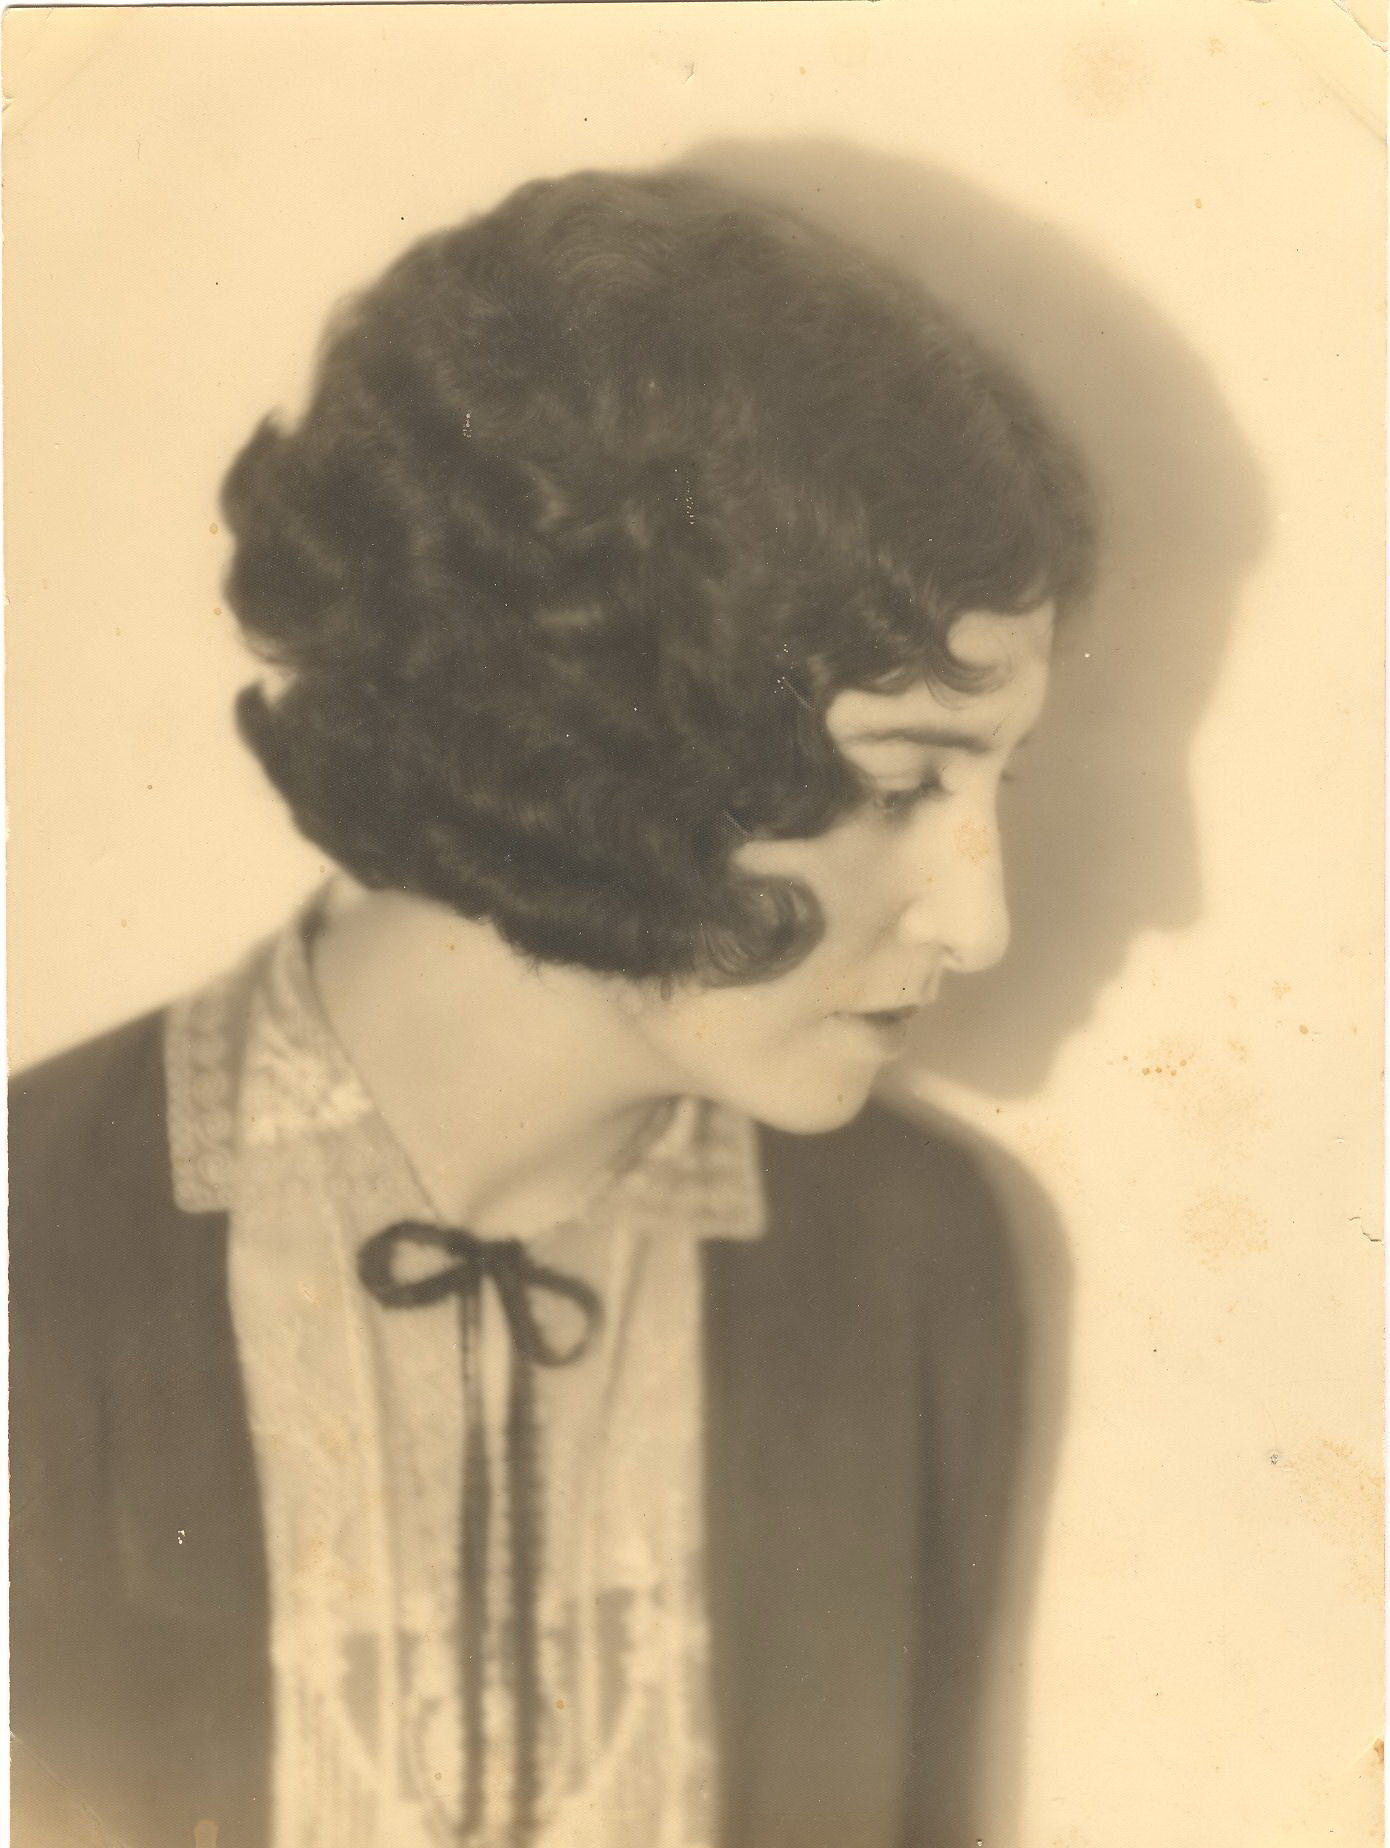 Nettie George